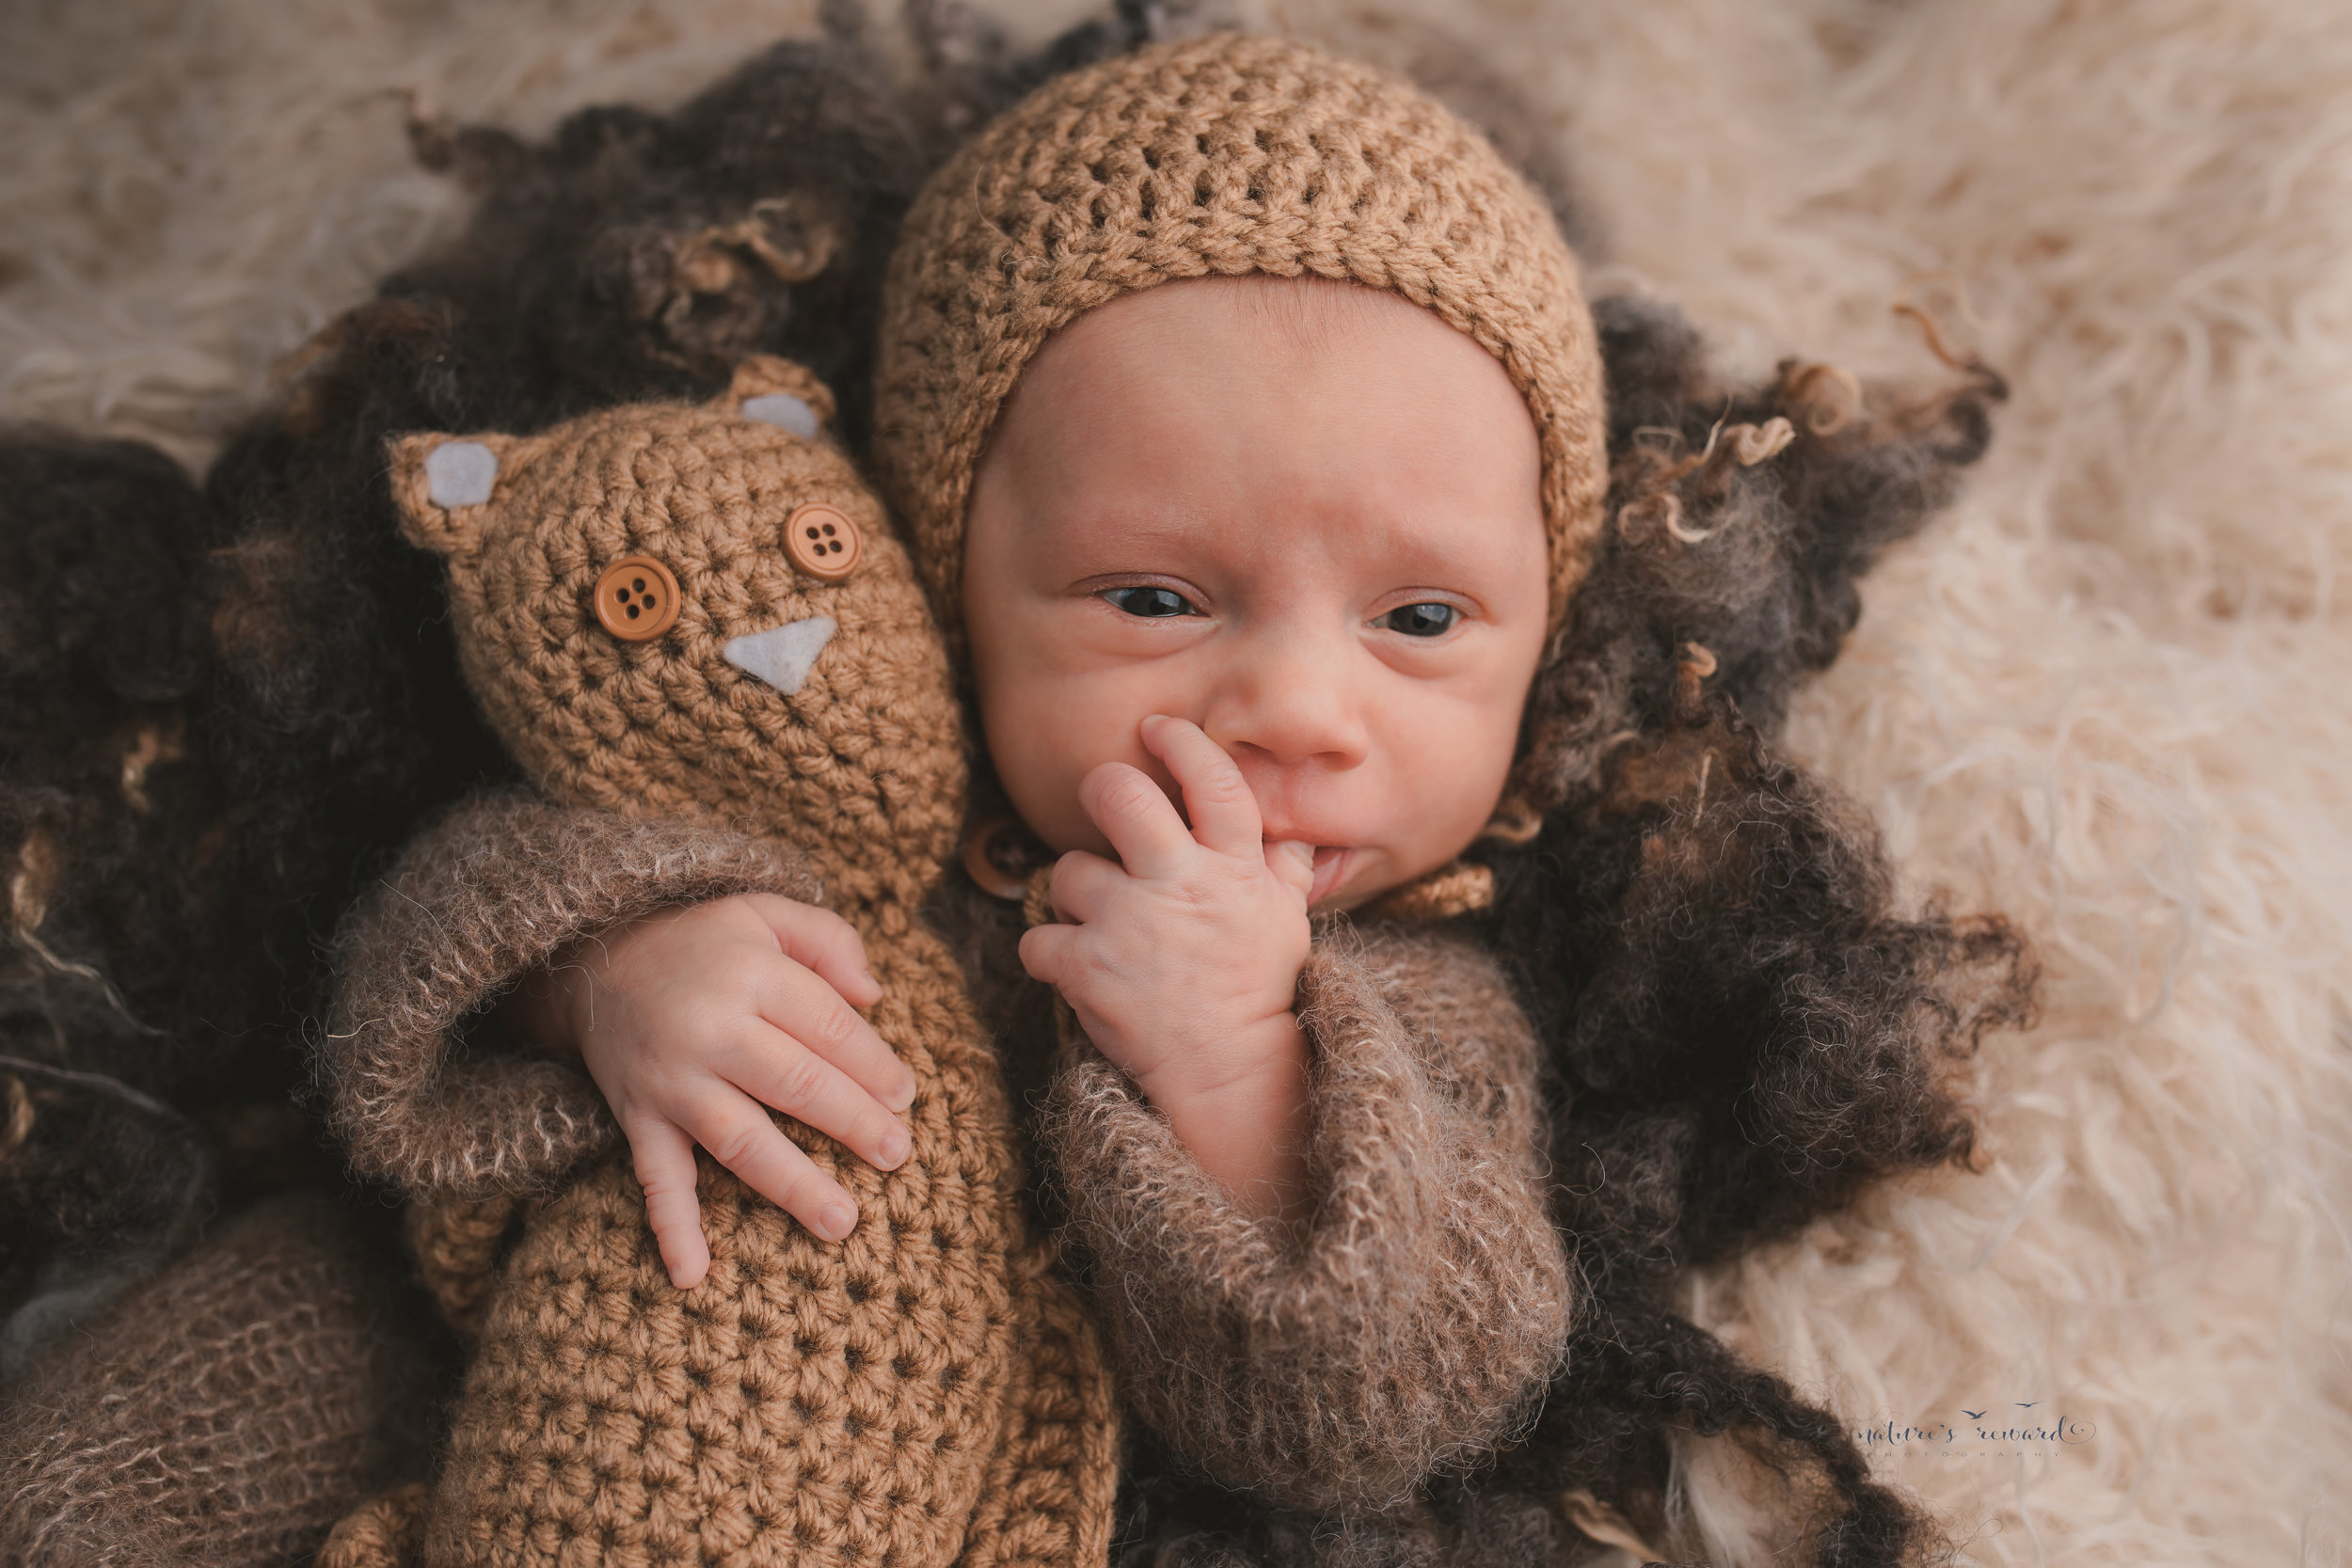 A baby boy wearing a sleeper and tan bonnet holding a teddy on a tan fur making a great face by nature's Reward Photography